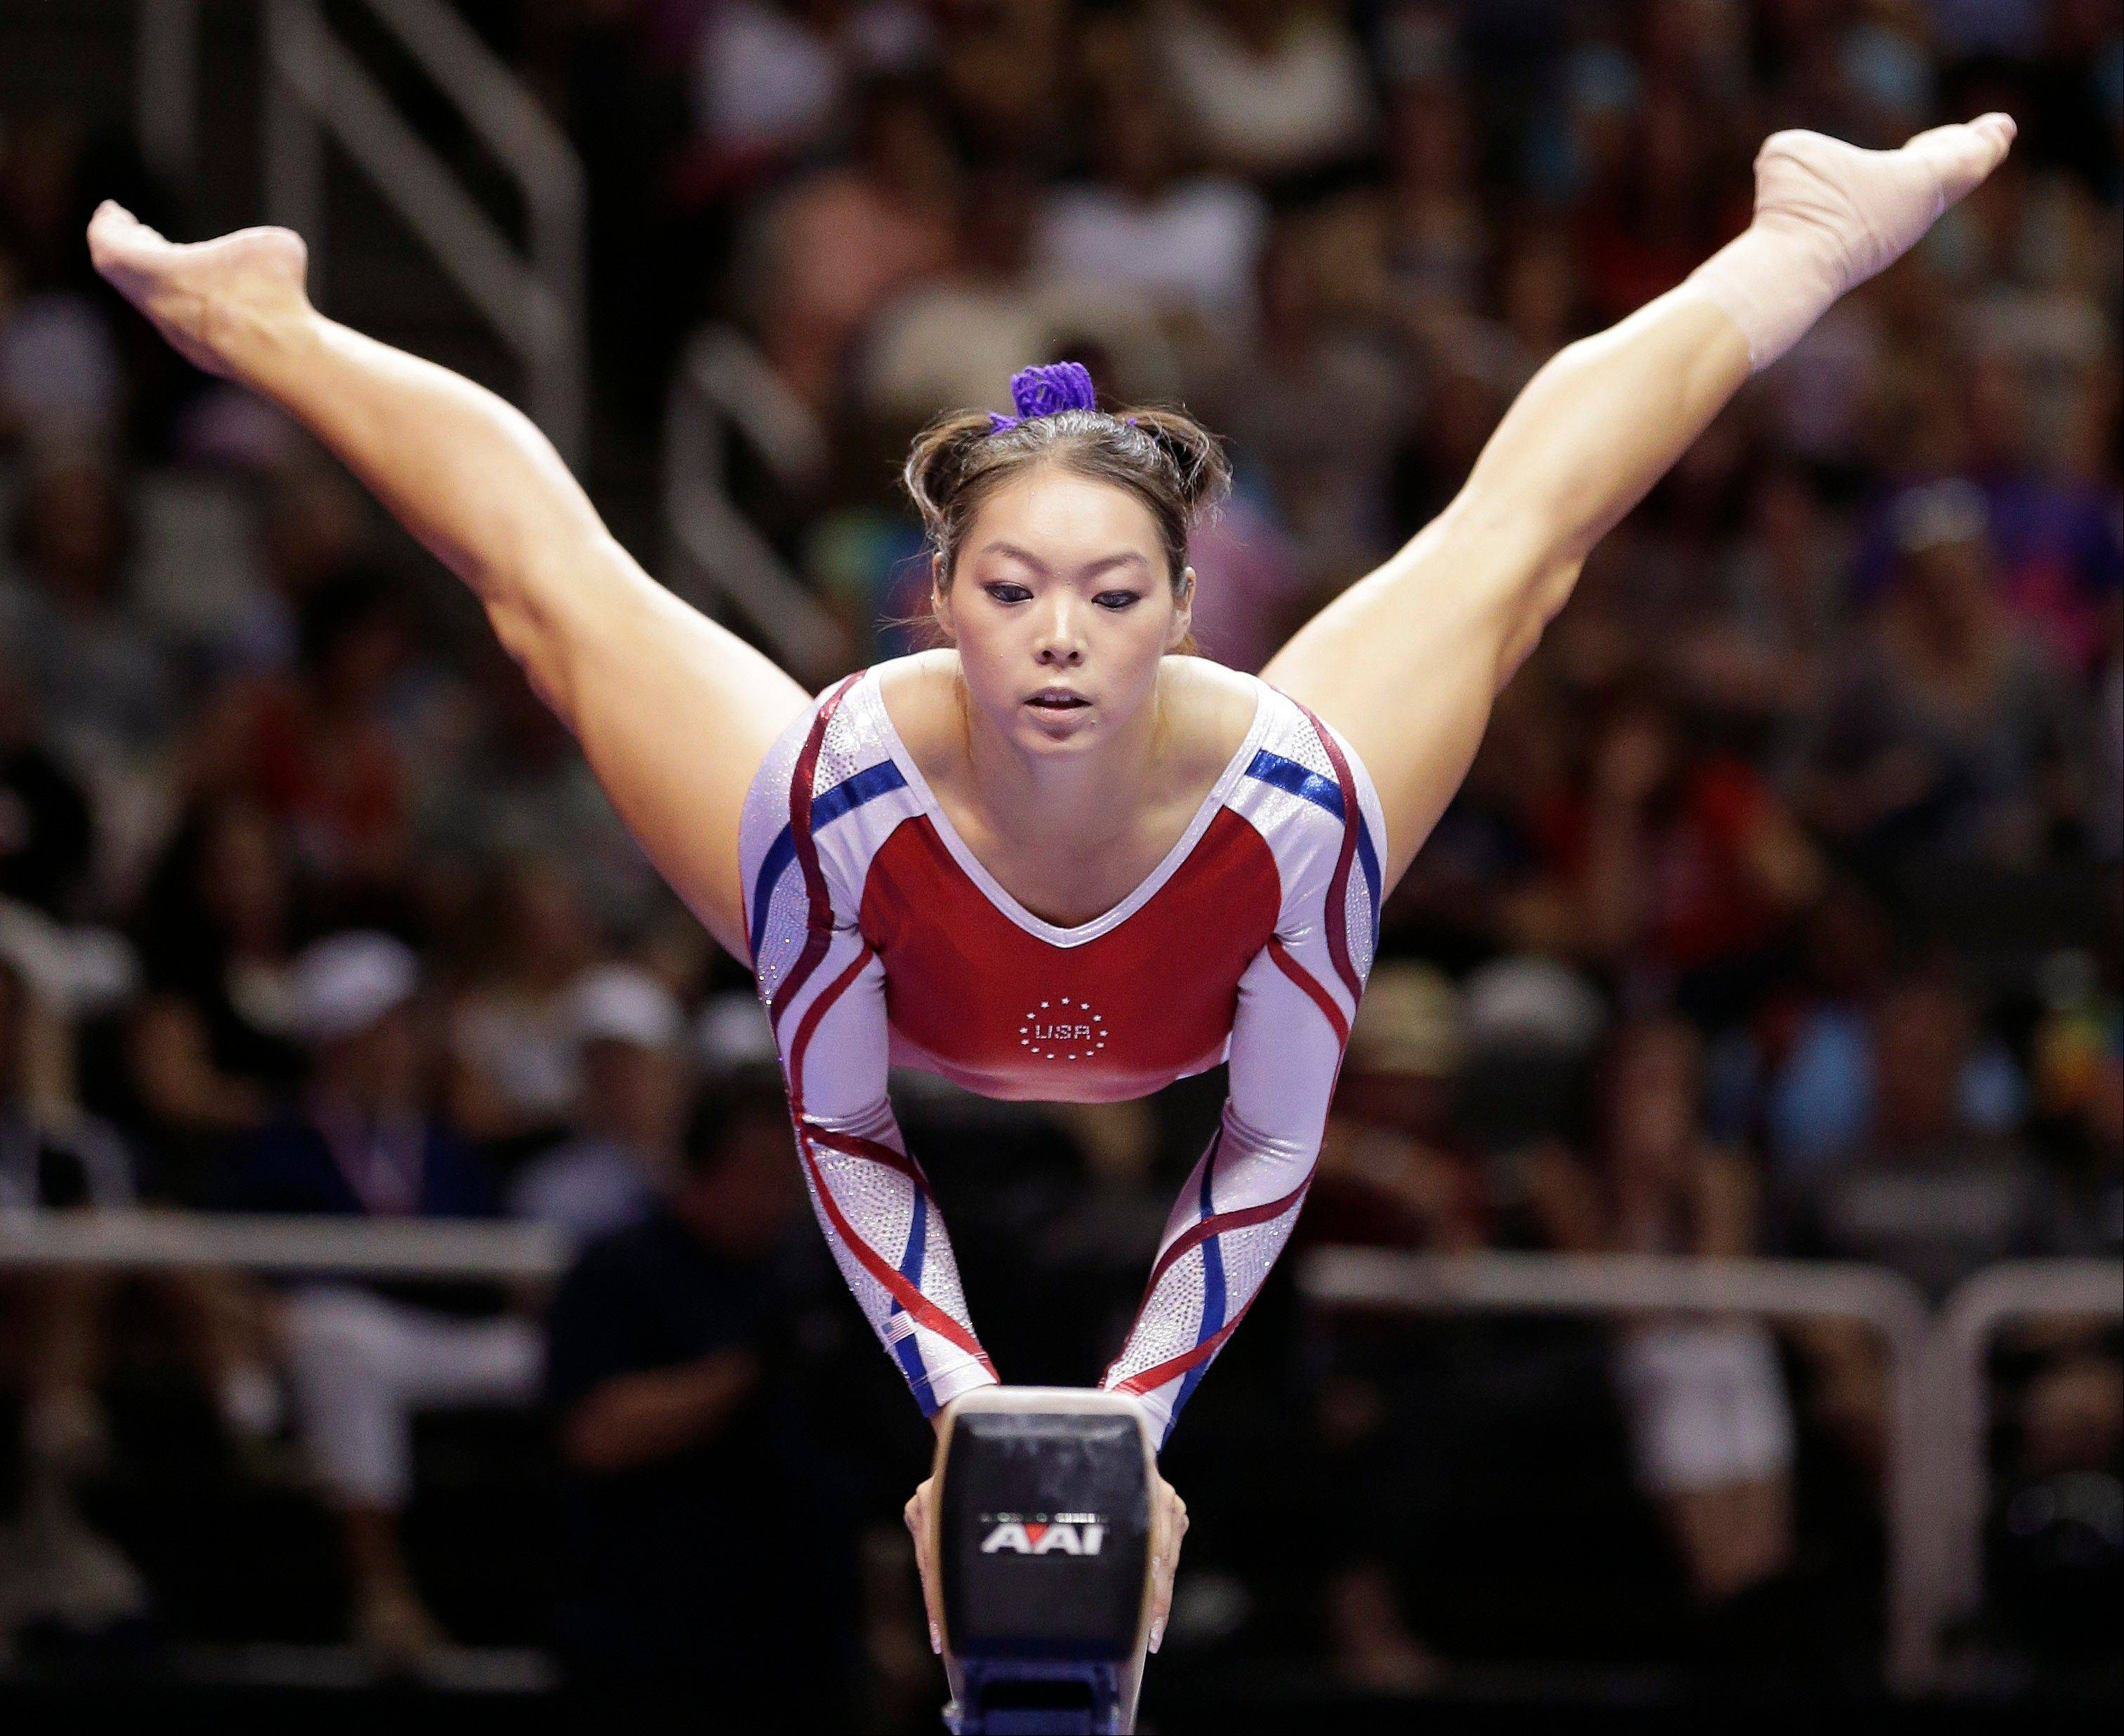 Anna Li performs on the balance beam Sunday during the final round of the women's Olympic gymnastics trials in San Jose, Calif. Li was named to the U.S. Olympic gymnastics team as one of three alternates and will be going with the team to London.